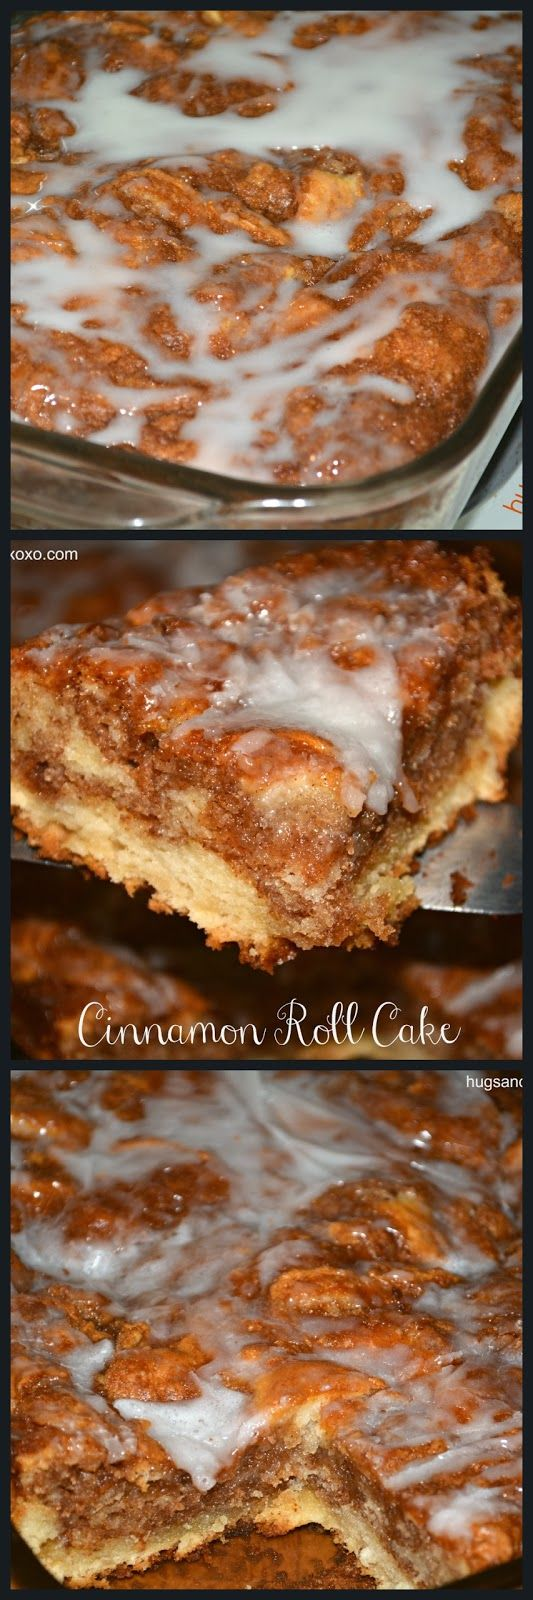 easy!! CINNAMON ROLL CAKE  - mix 1 box yellow cake mix,  2 eggs, 1 stick melted butter. Pour in greased 13x9 pan, then for TOPPING  1 C butter soft, 1 C brown sugar, 2 T. flour, 1 T. cinnamon. pour over batter, and swirl with butter knife.   GLAZE  2 cups powdered sugar 5 Tbsp. milk 1 tsp. vanilla. 350 for 20-25  min